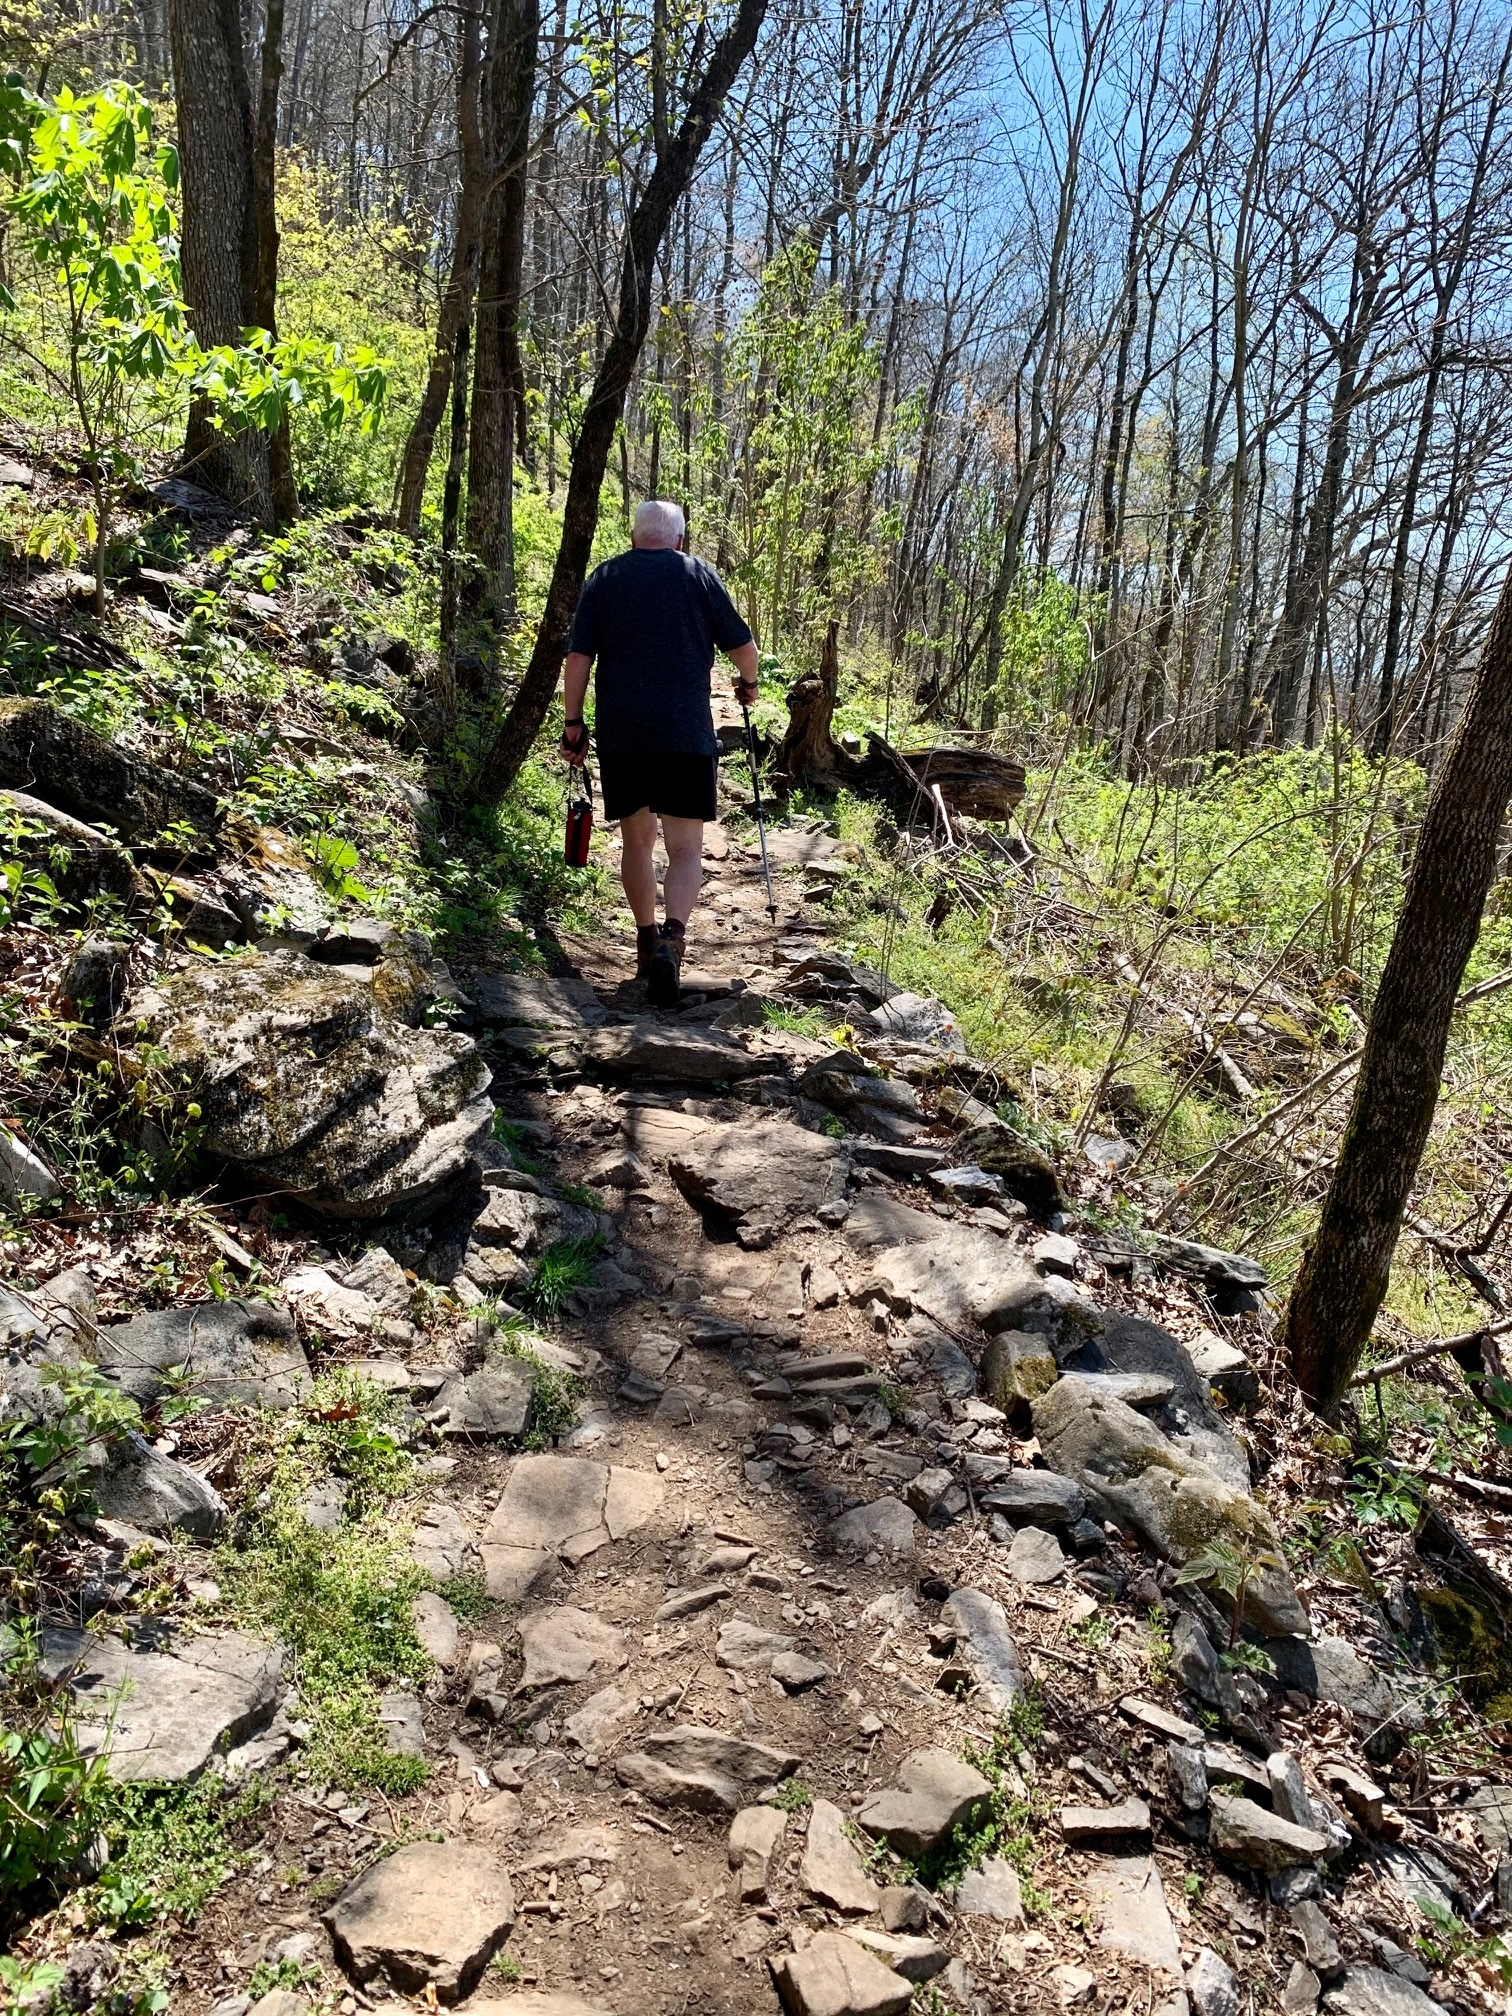 Bearwallow Trails with rocks and ruts climbing up